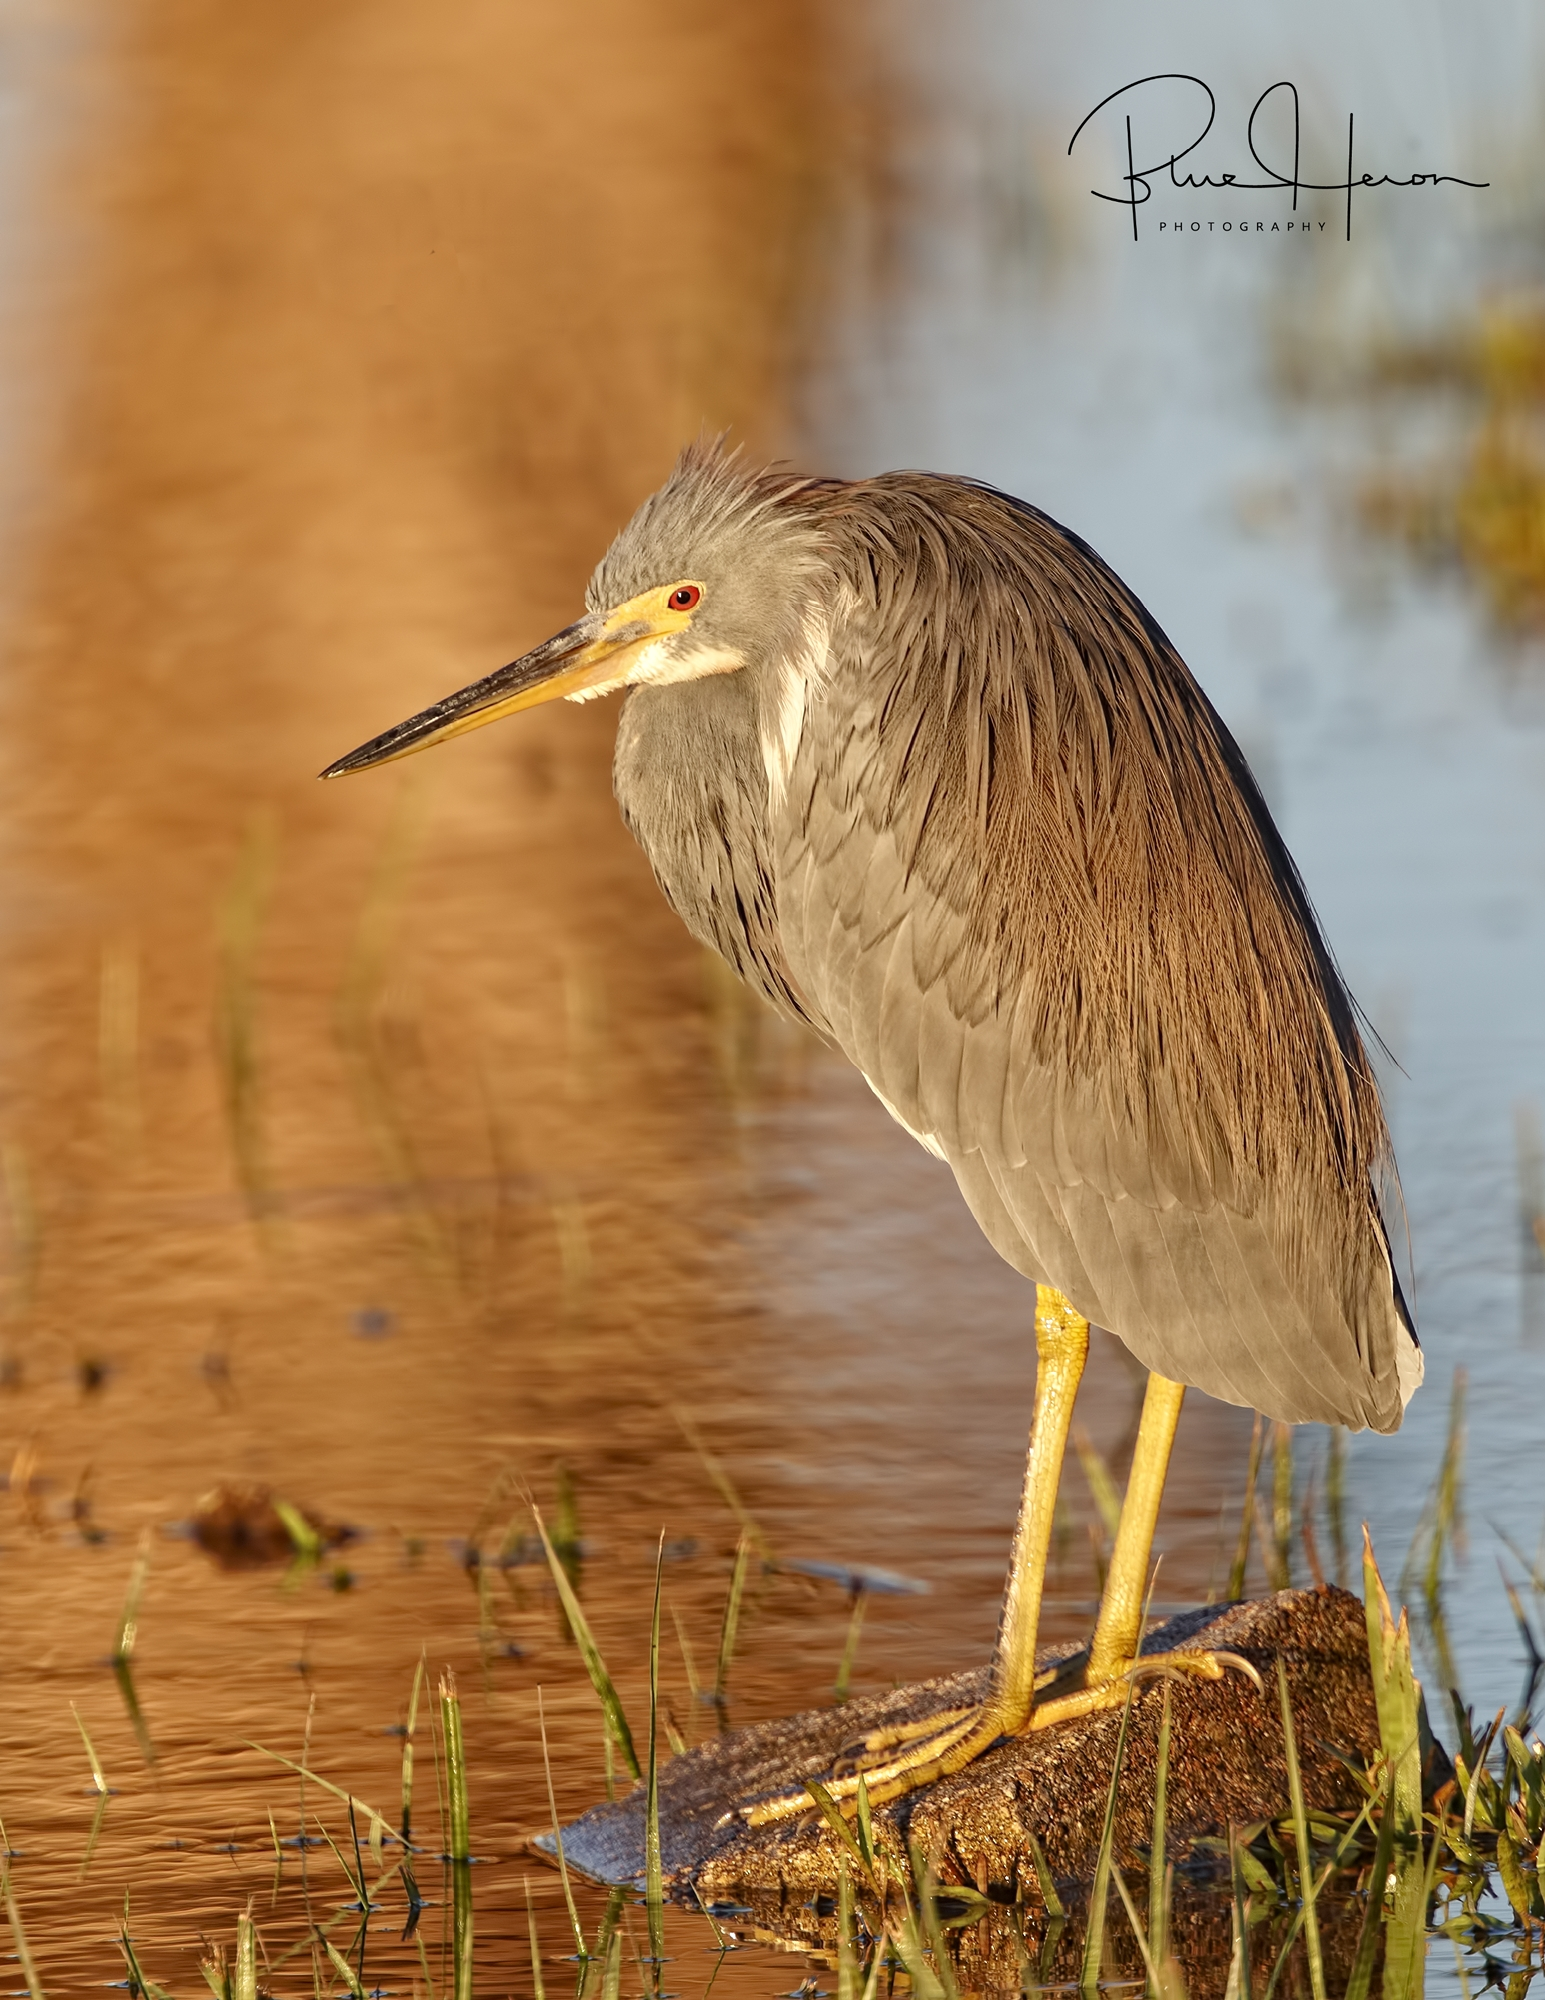 Golden glow on the Tricolored Heron..